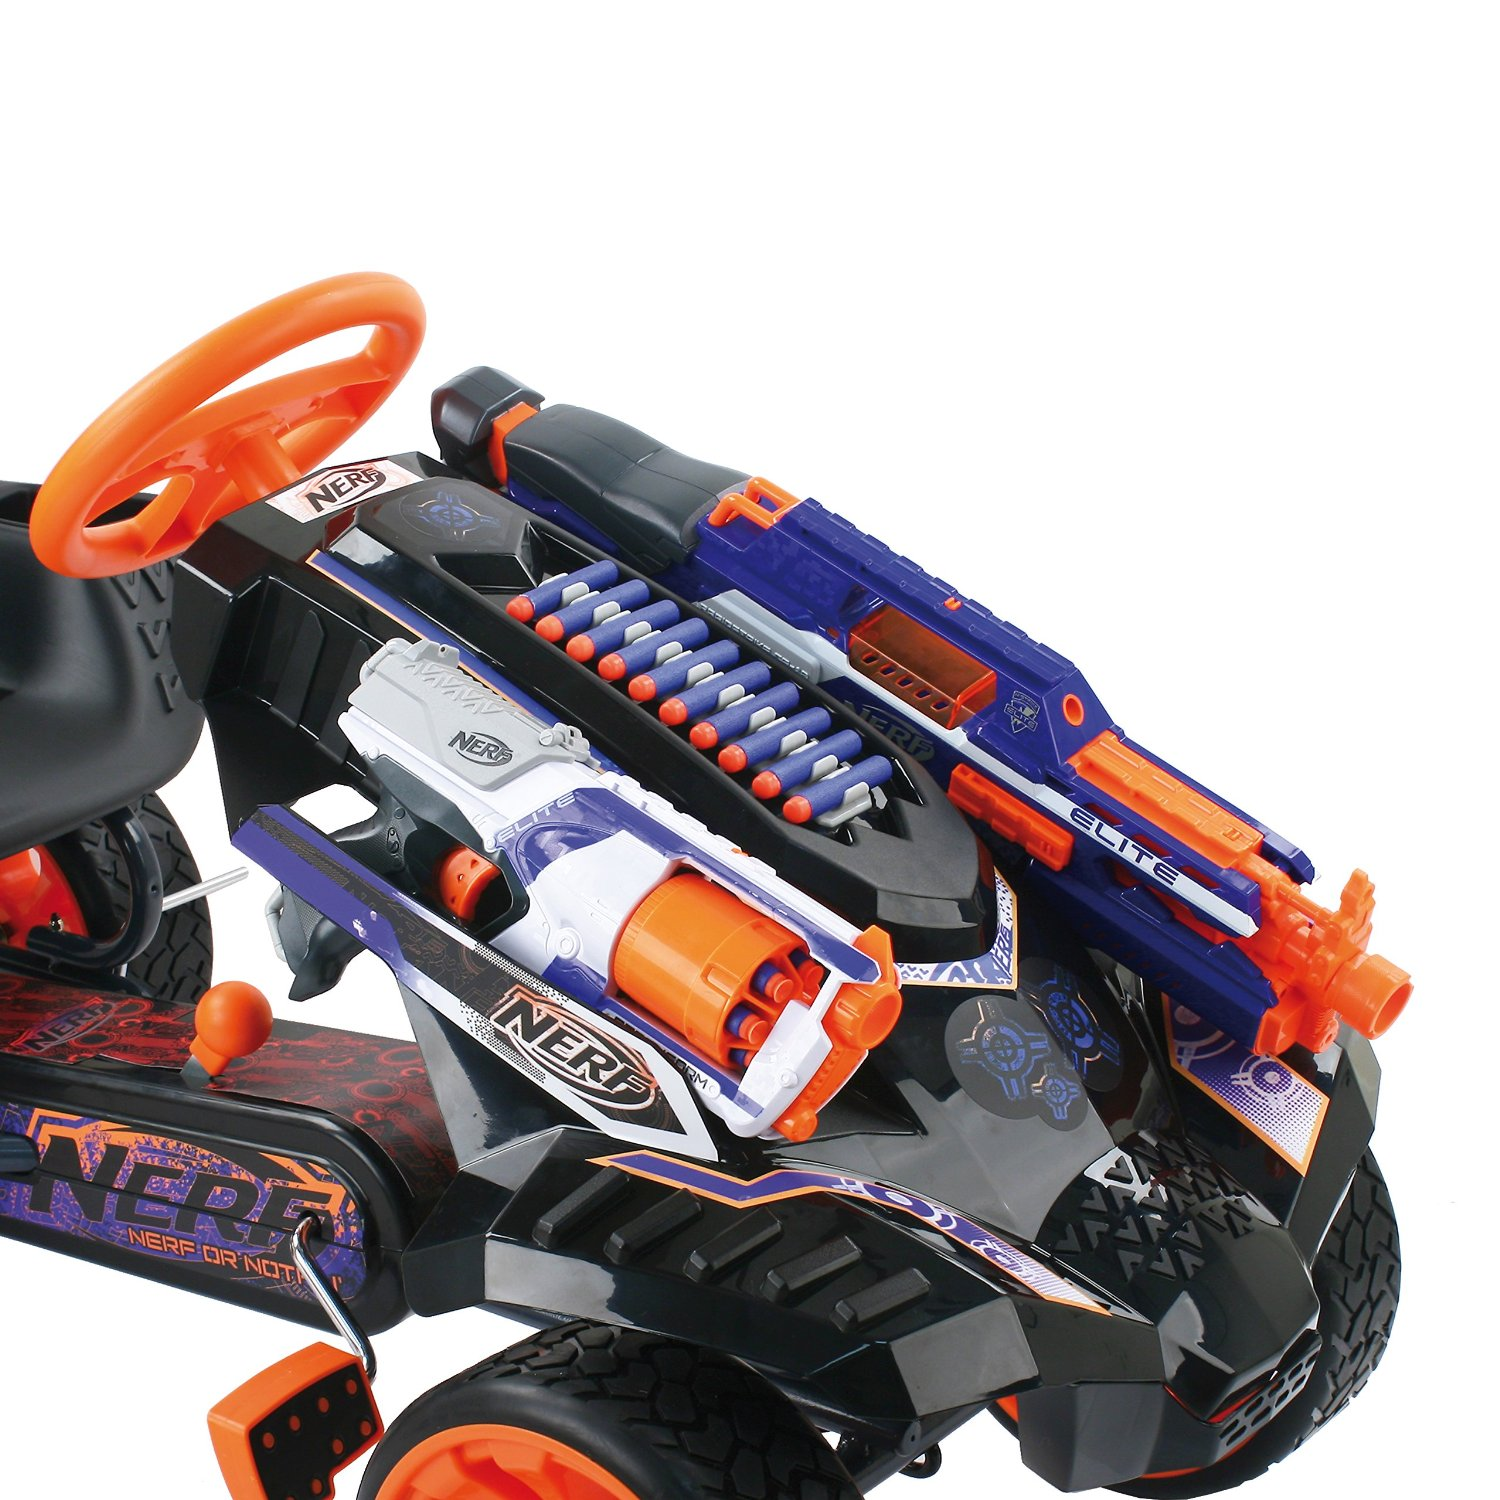 Things We Need This Awesome Nerf Gun Go Kart